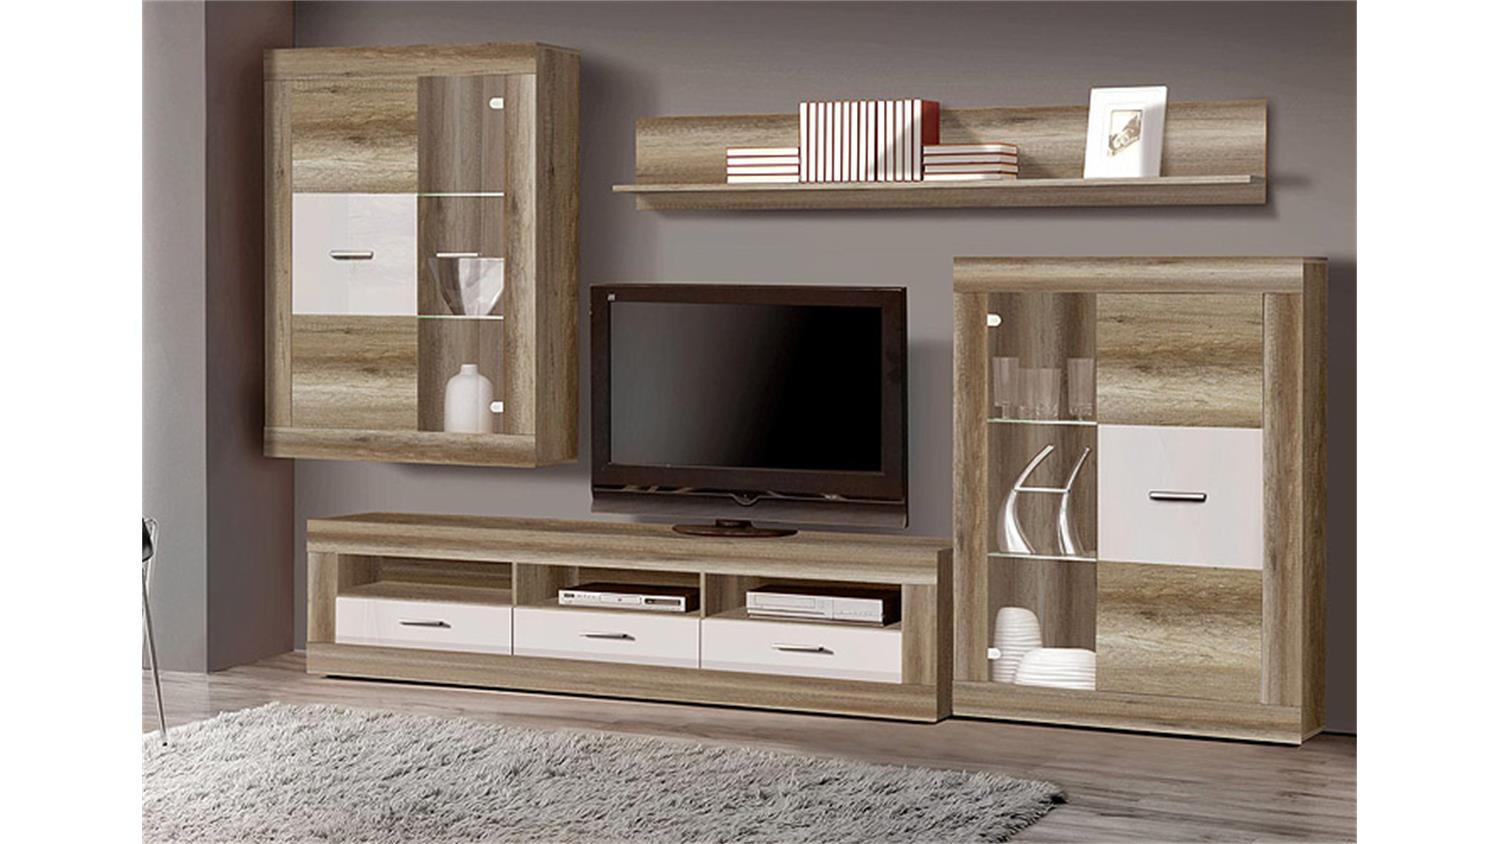 wohnwand gaucho eiche antik wei hochglanz led. Black Bedroom Furniture Sets. Home Design Ideas